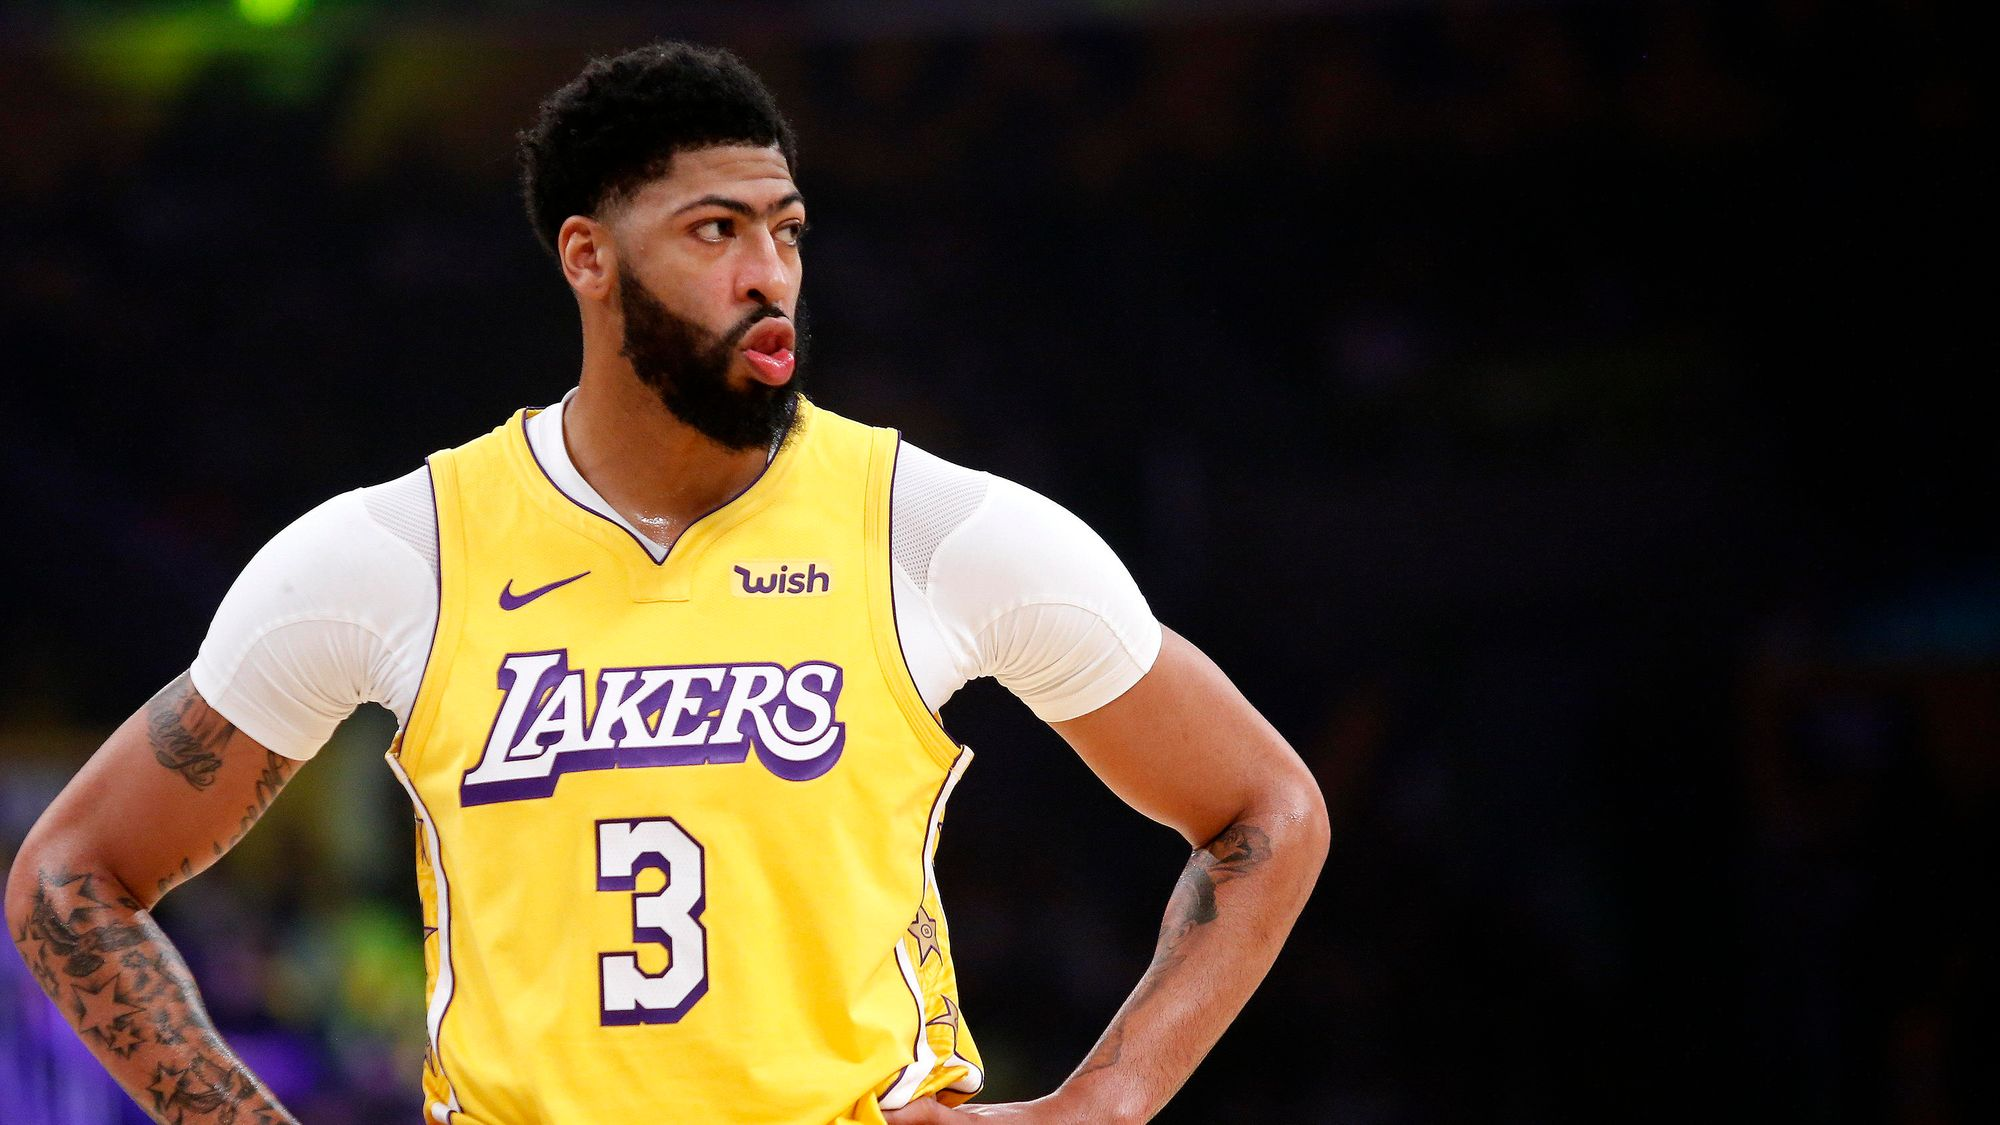 NBA Free Agency News: Ranking The Top Power Forwards In 2020 Free Agency